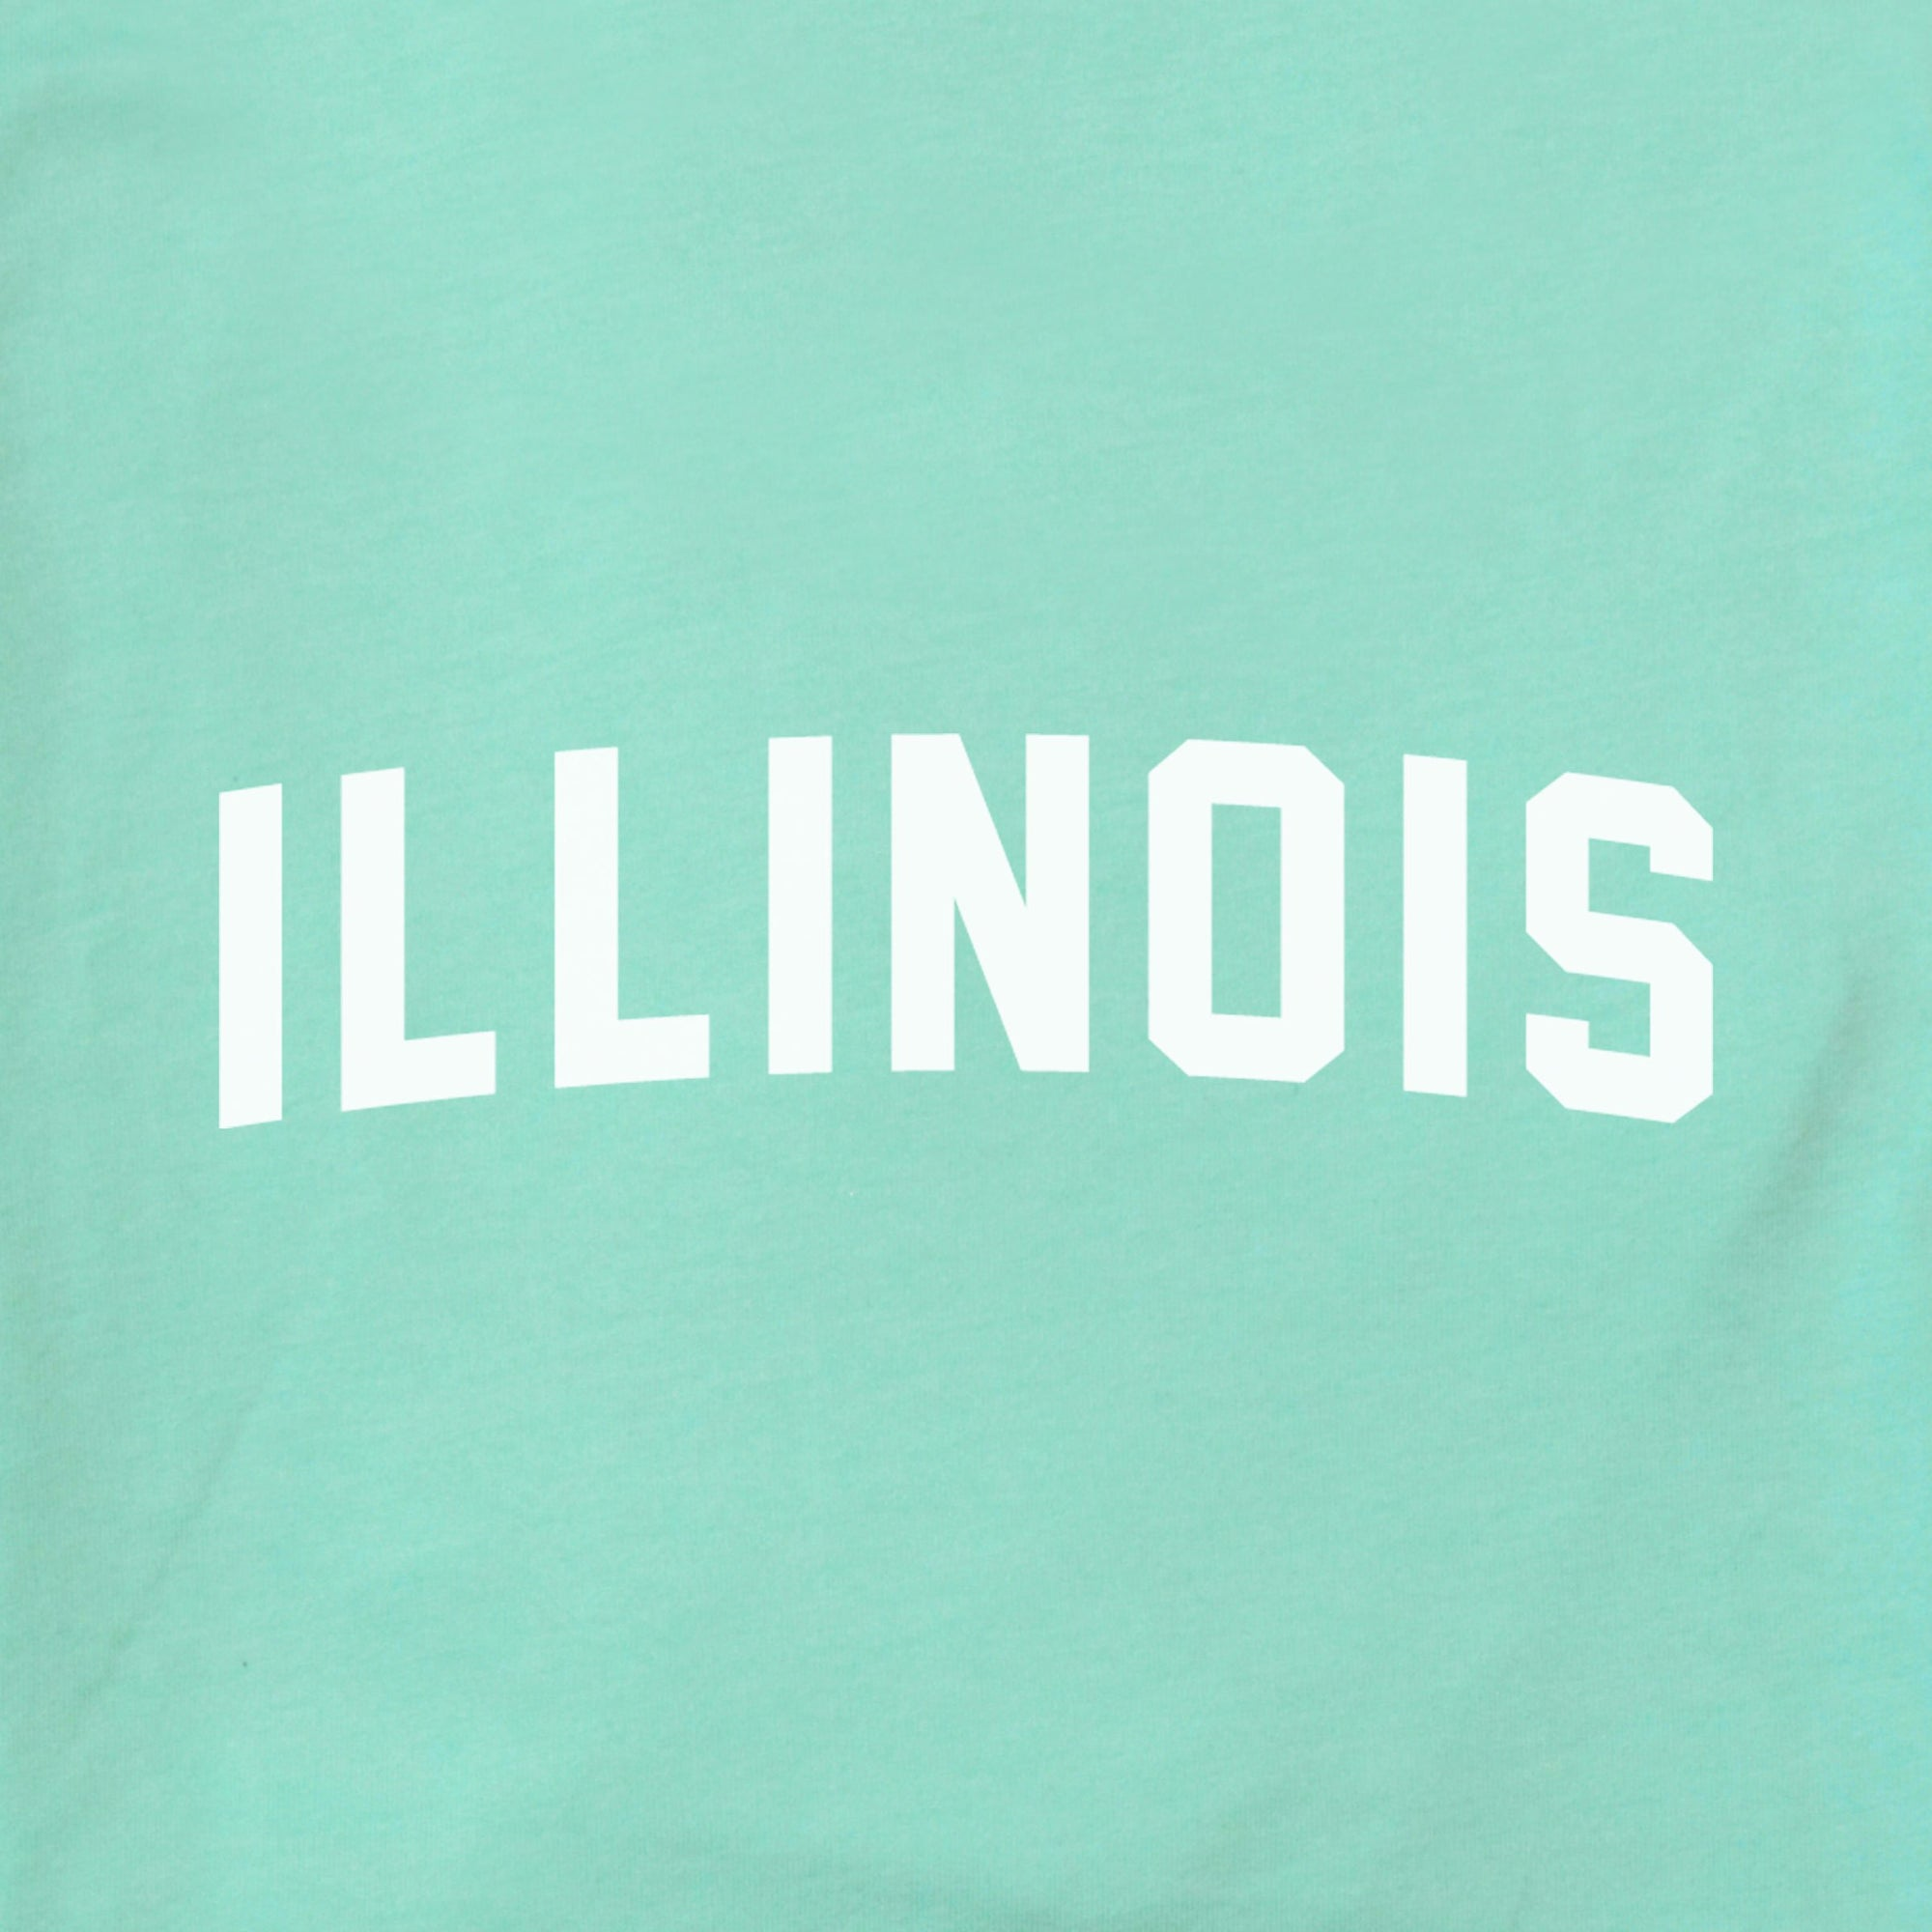 Illinois Arched The Home T XS Mint